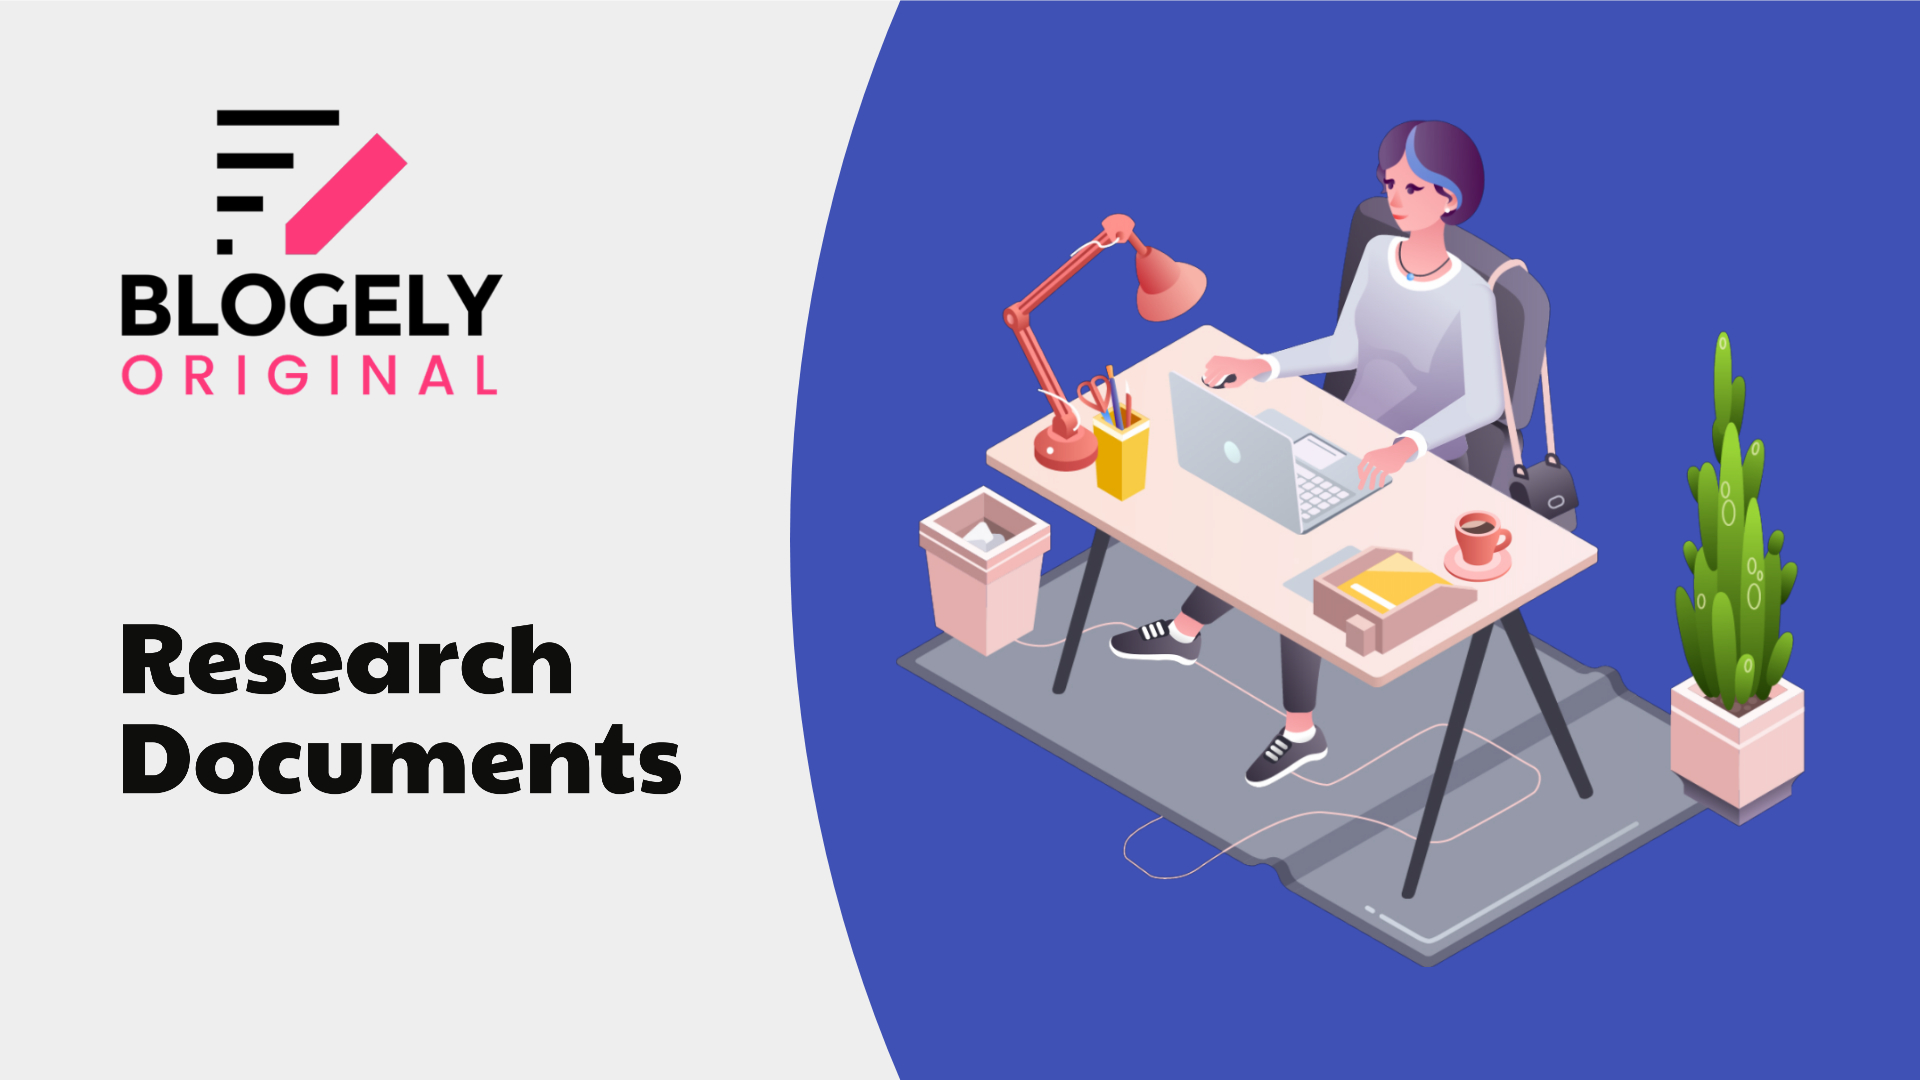 business and marketing research topics in Blogely